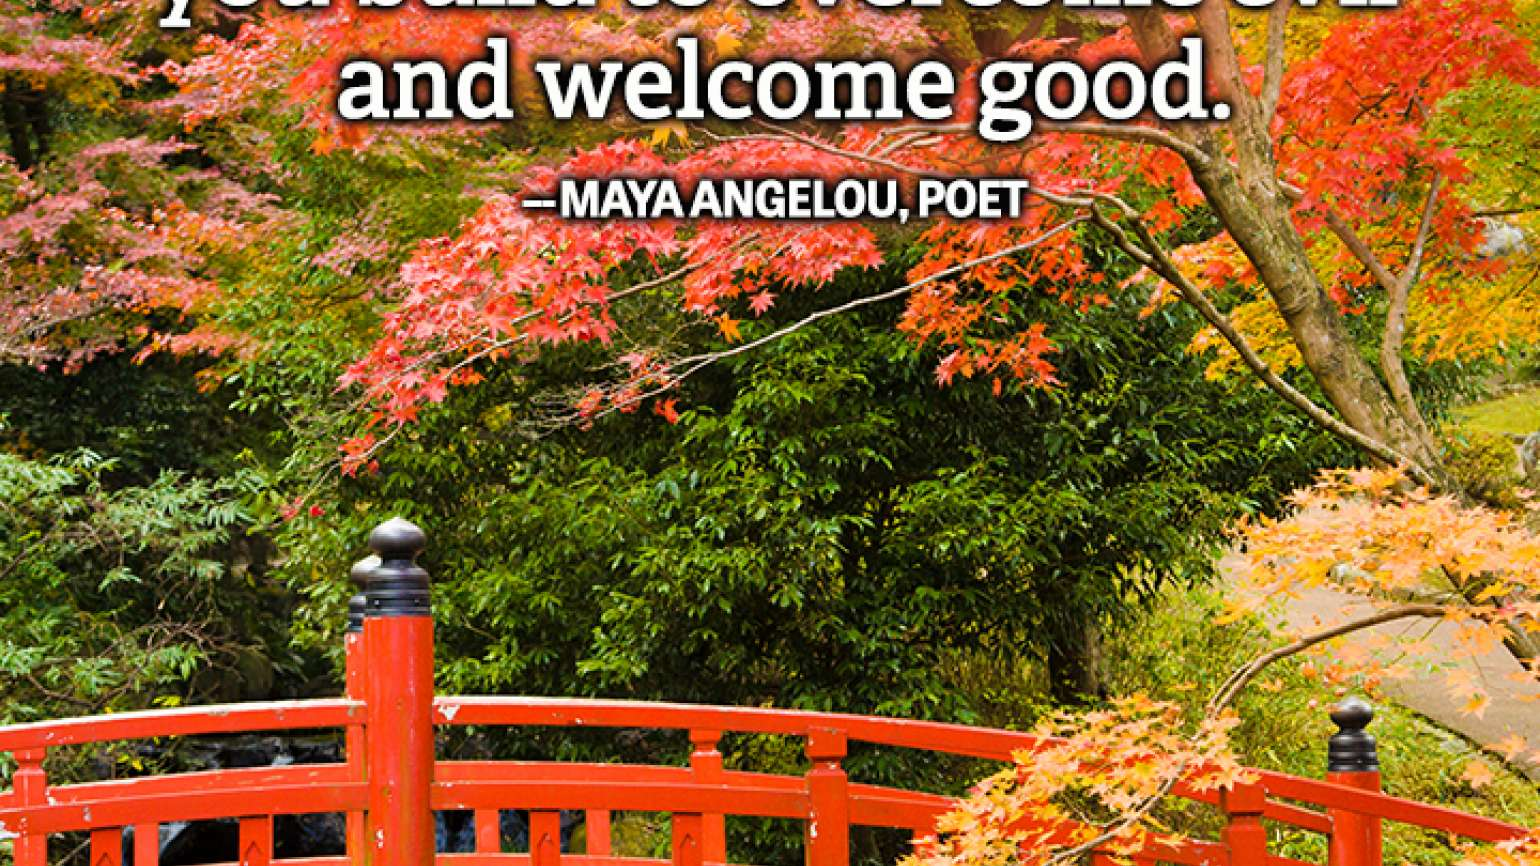 Maya Angelou quote gratitude faith nightly prayer bridge welcome good